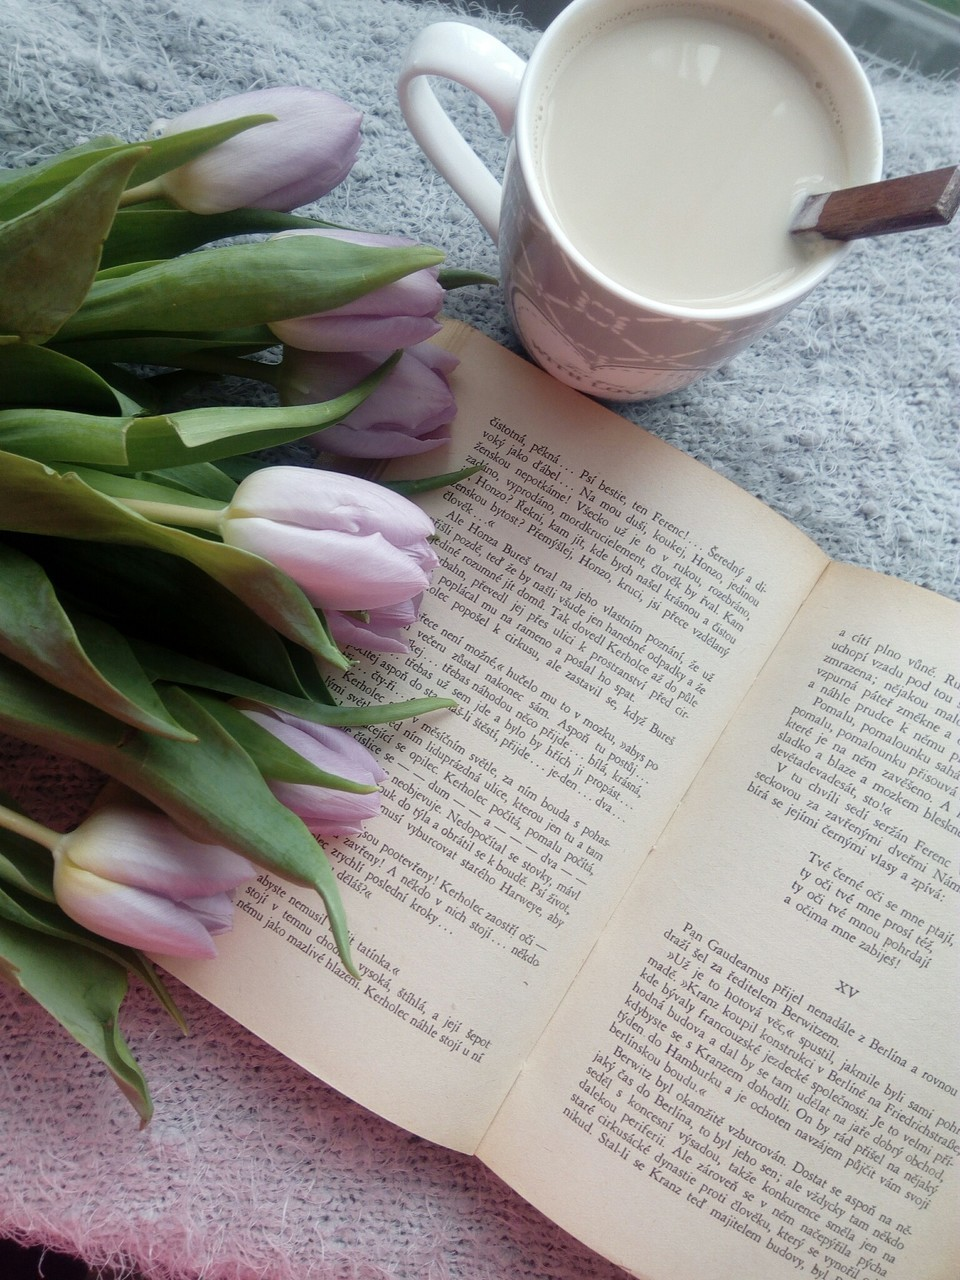 coffe, flowers, and Nice day image